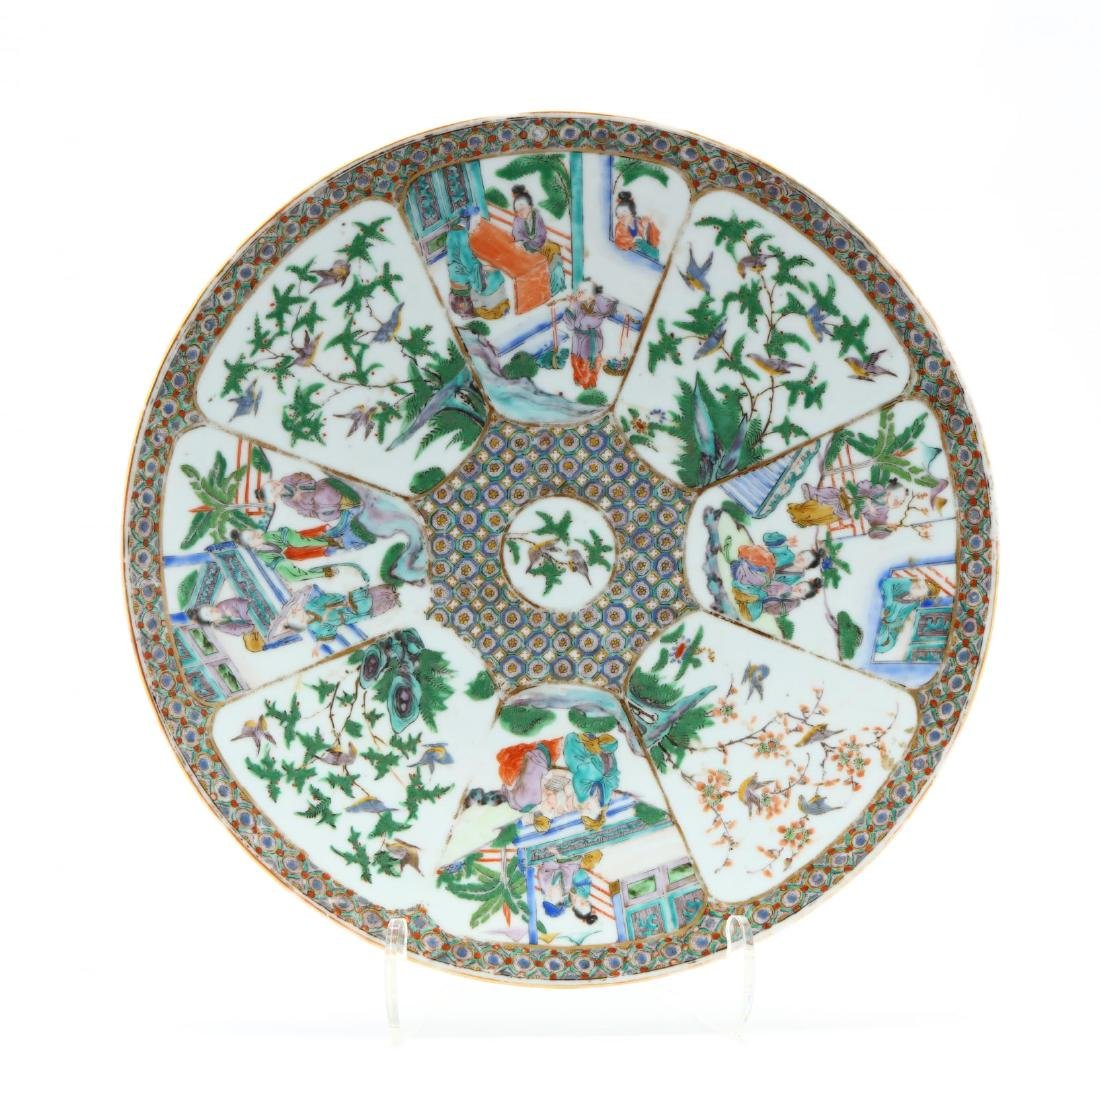 A Chinese Export Porcelain Famille Verte Charger